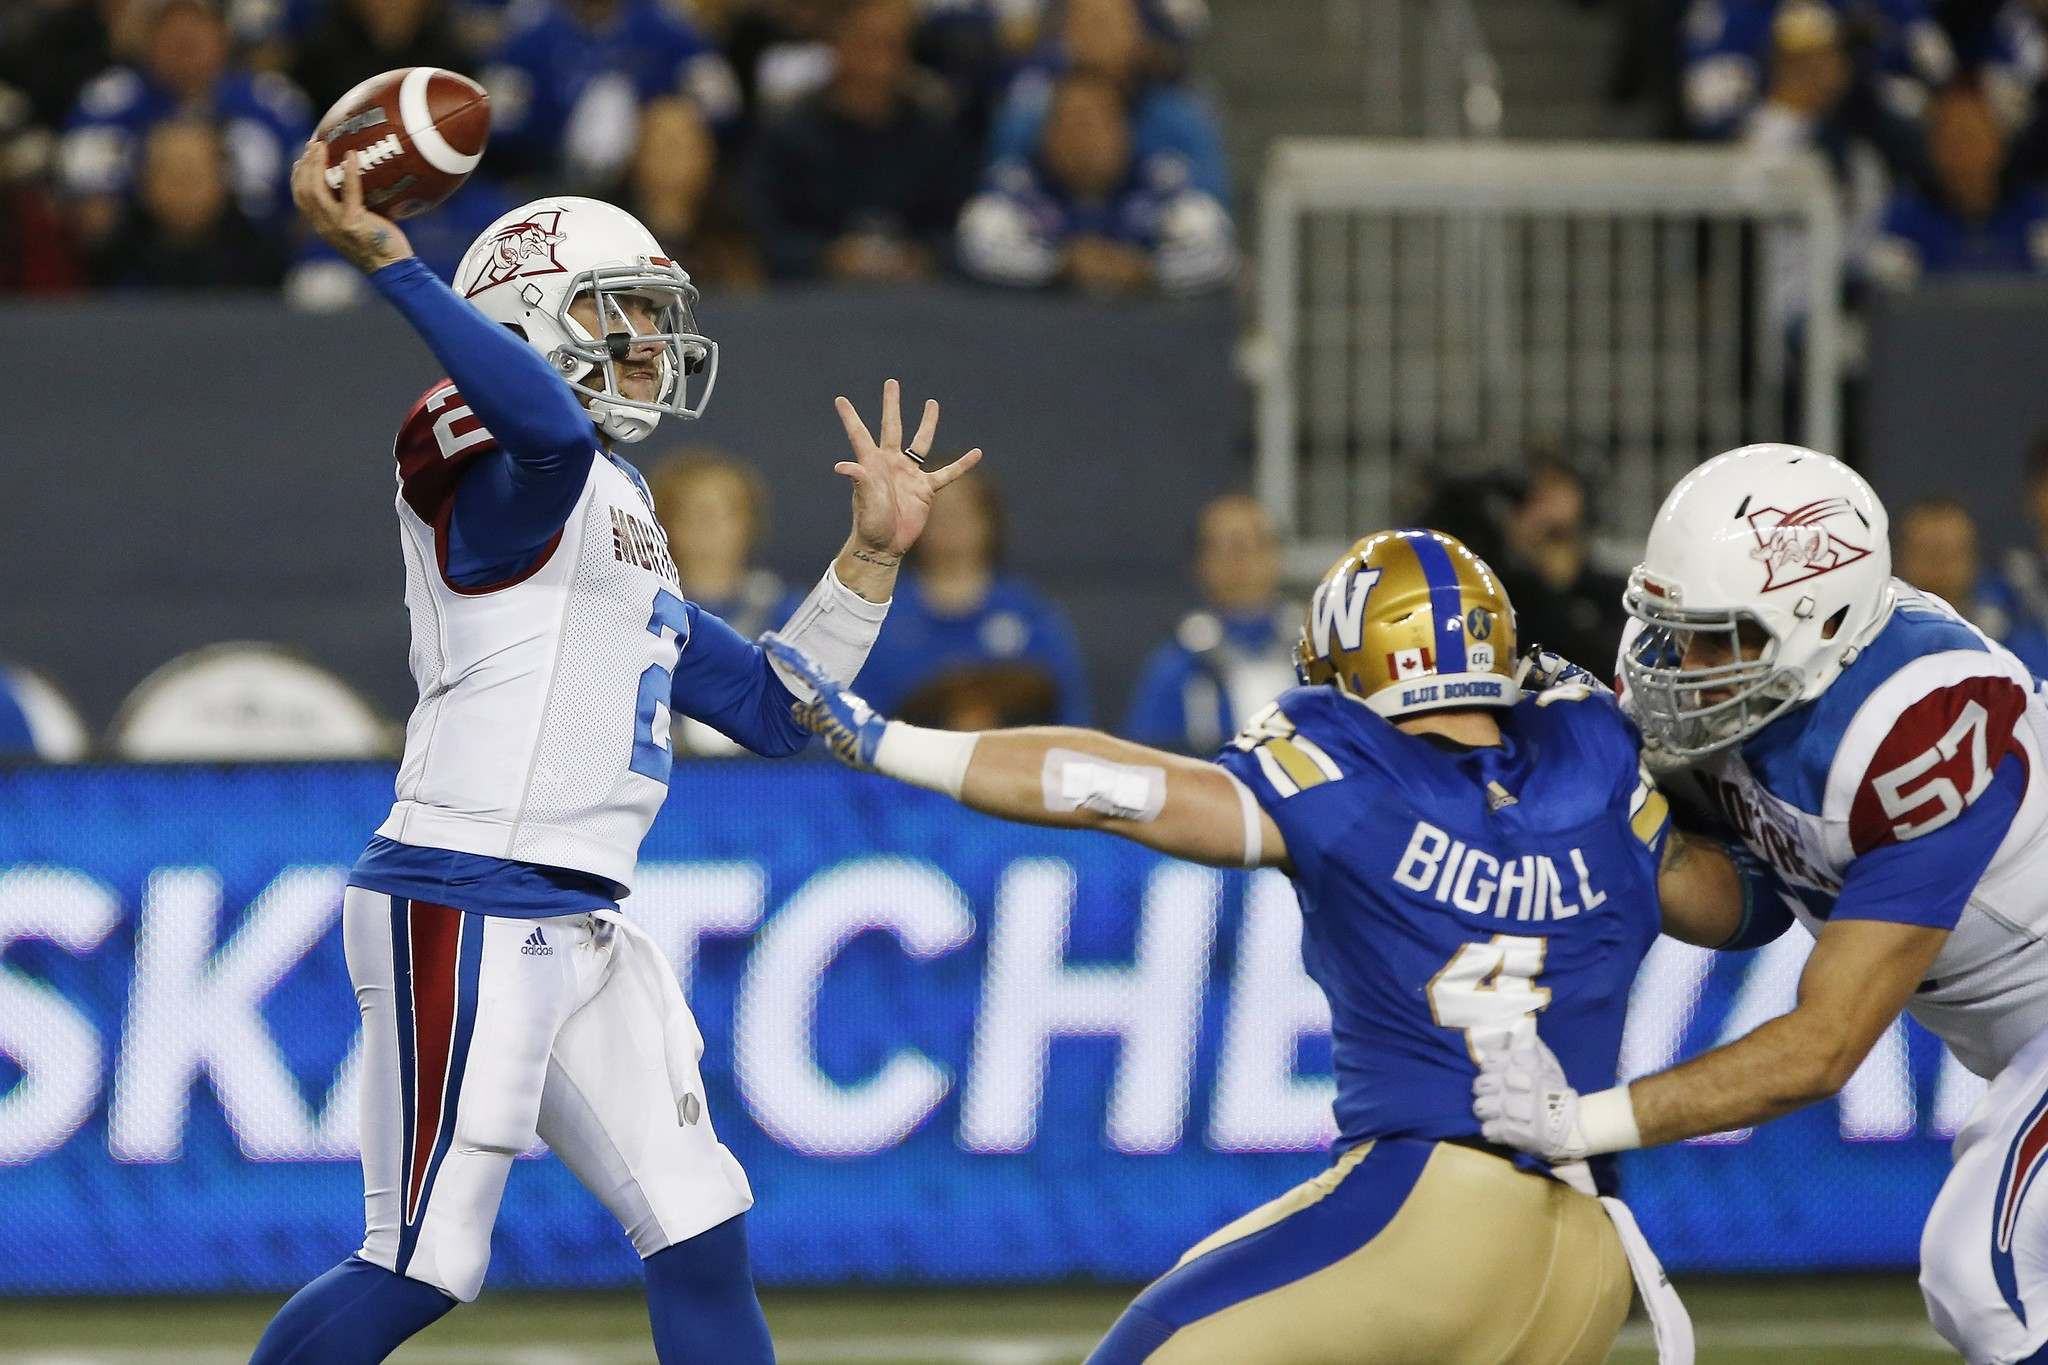 Montreal Alouettes quarterback Johnny Manziel might not understand the kind of velocity he has to put on certain passes on a CFL-sized field. (John Woods / The Canadian Press)</p></p>